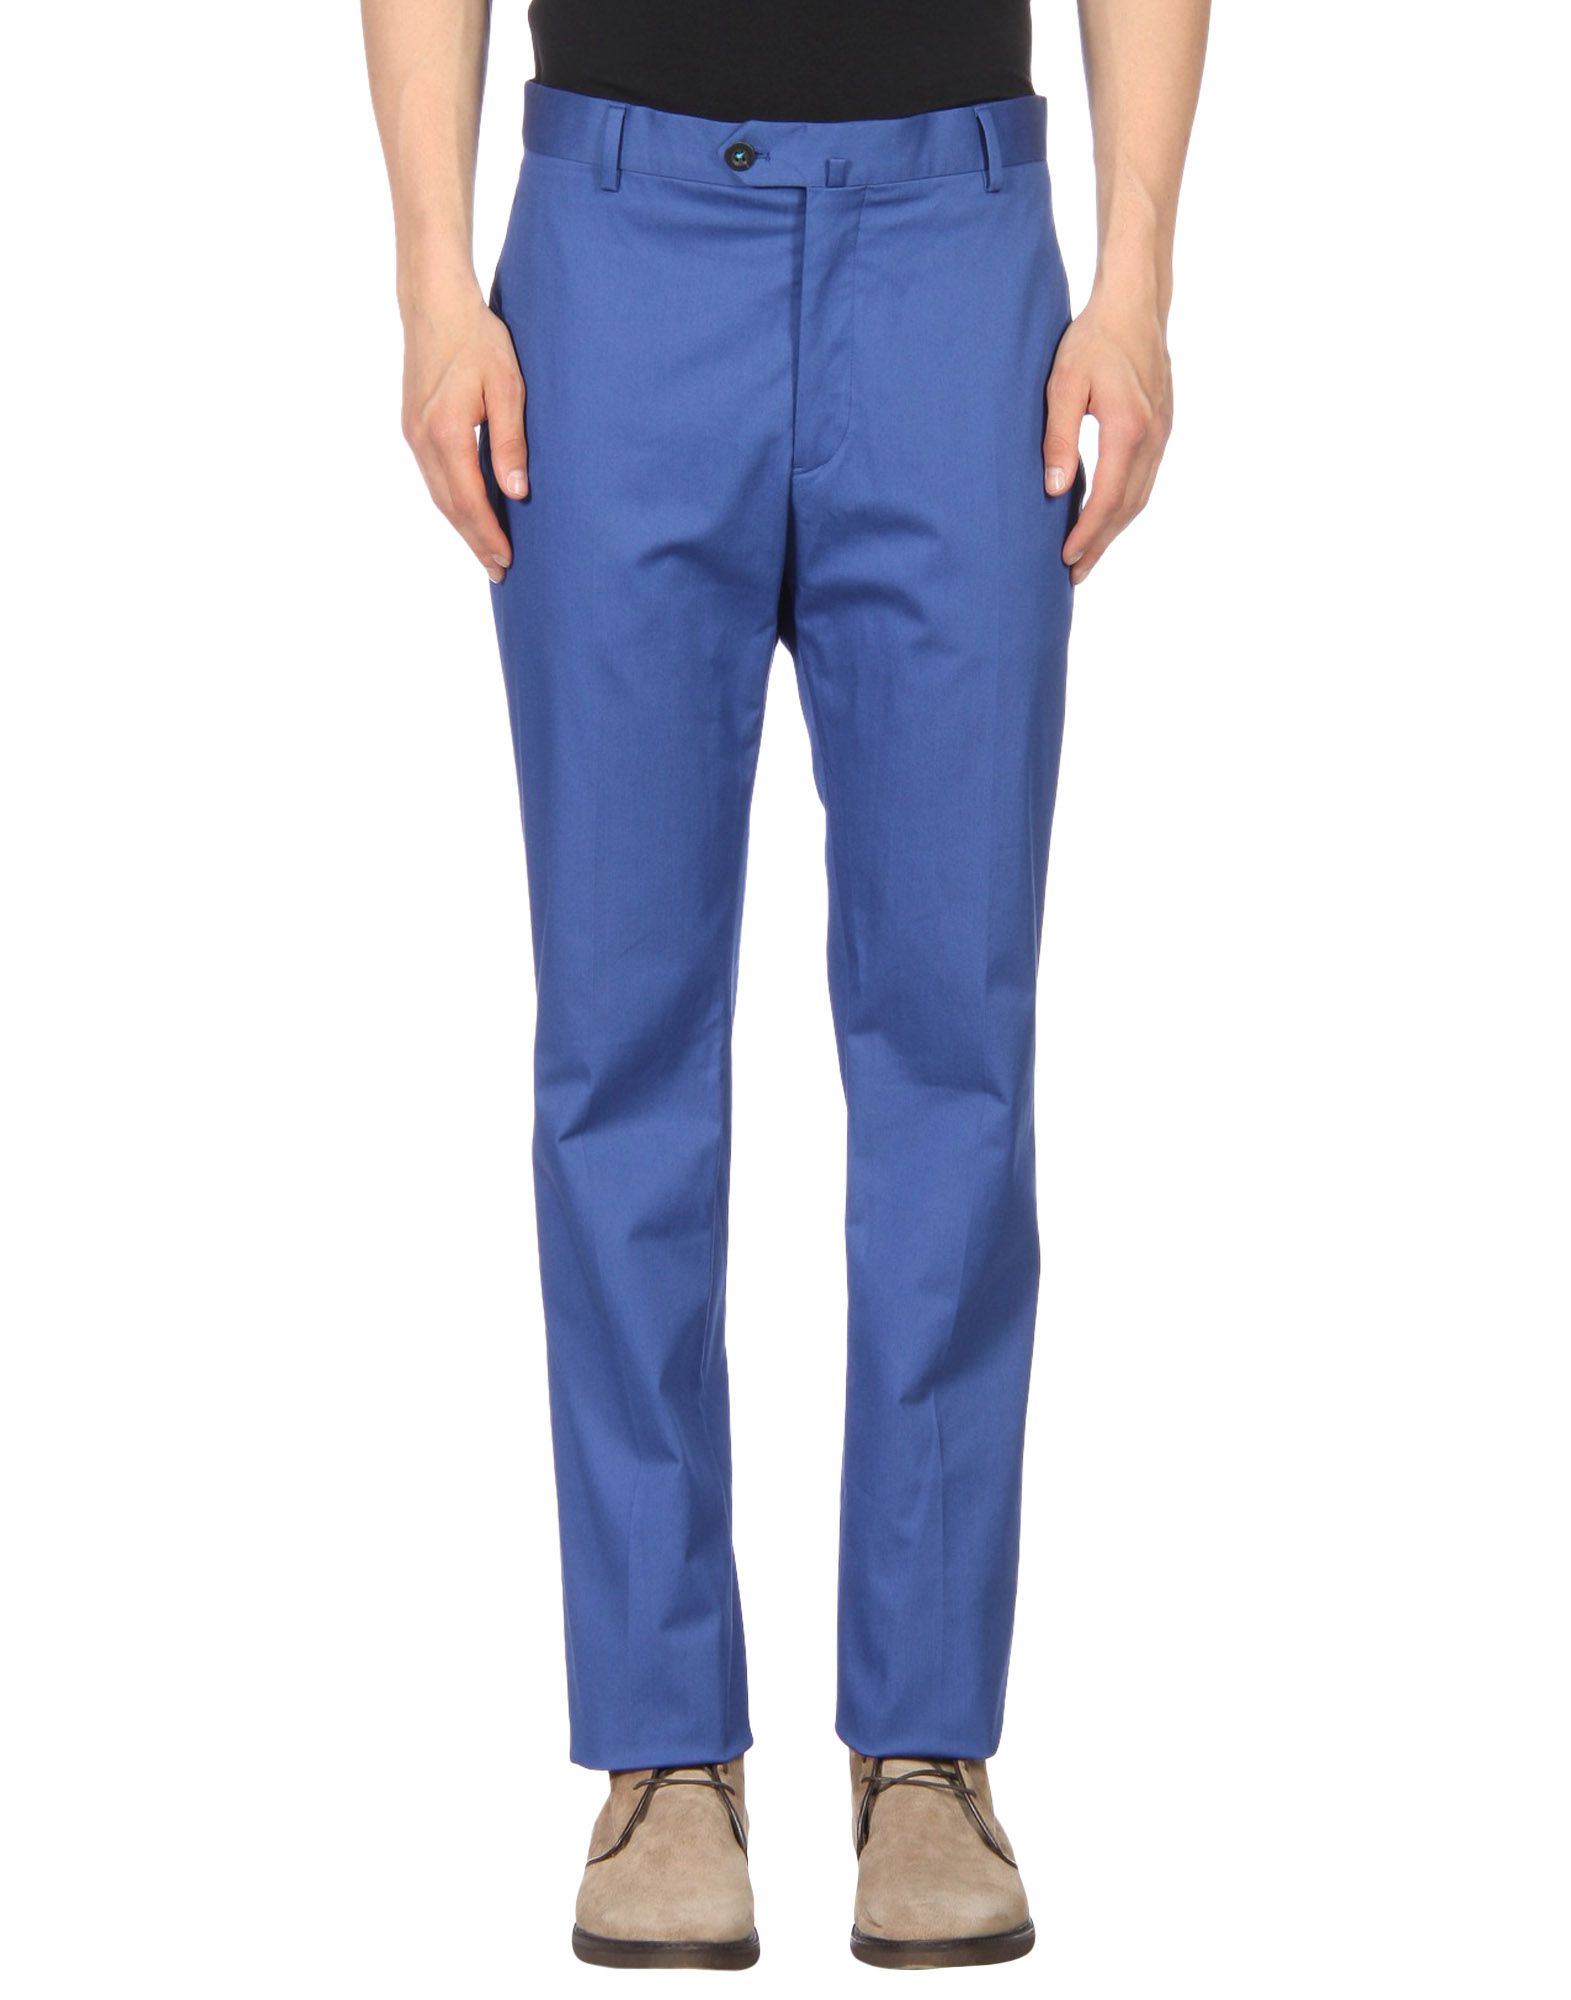 DUNHILL LINKS Casual Pants in Bright Blue